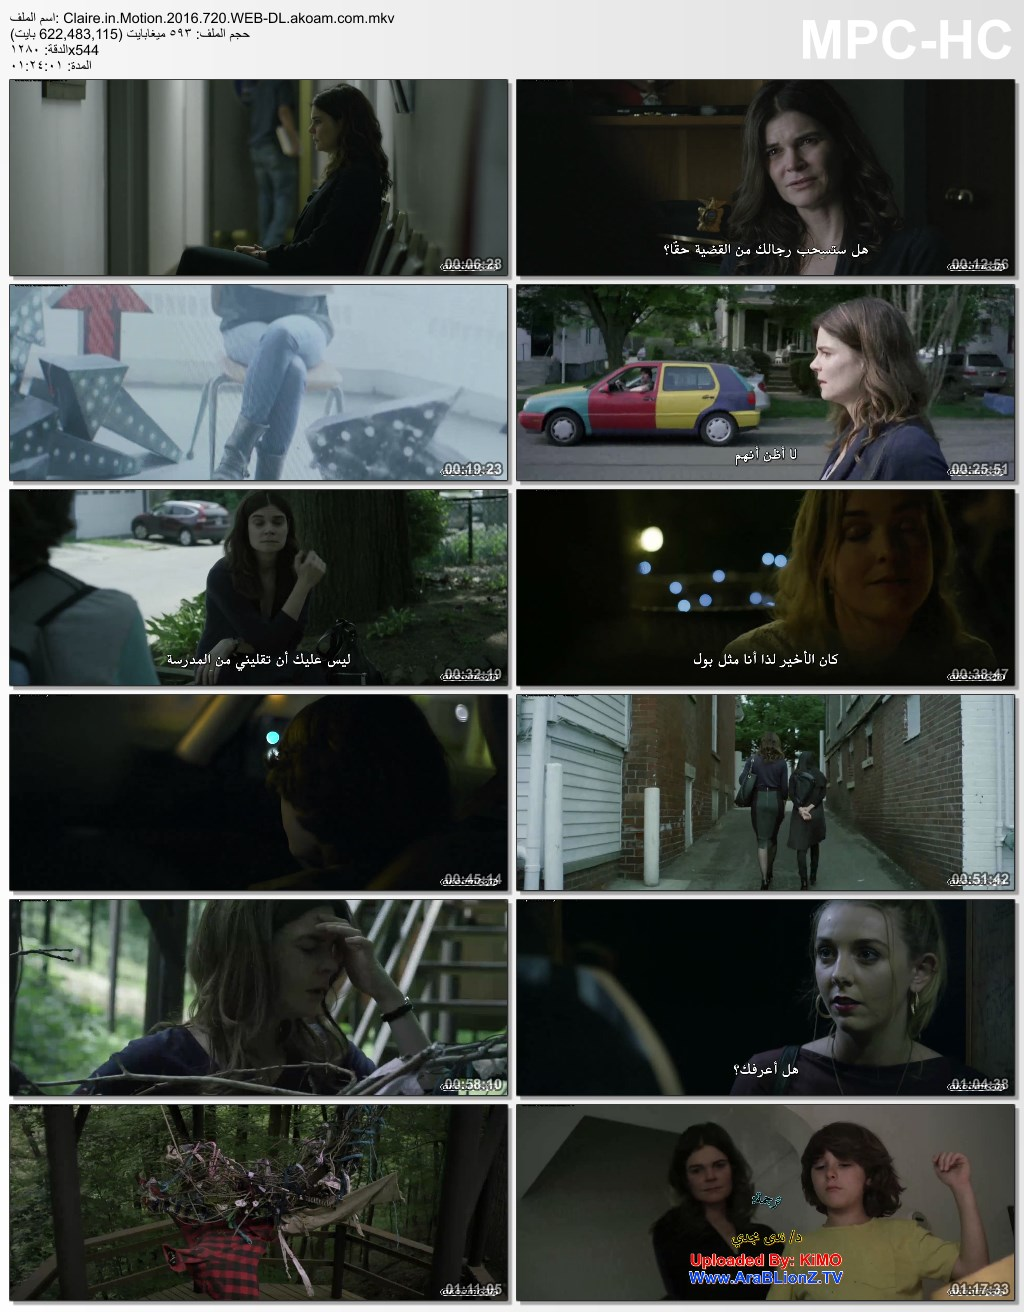 Claire in Motion,الدراما